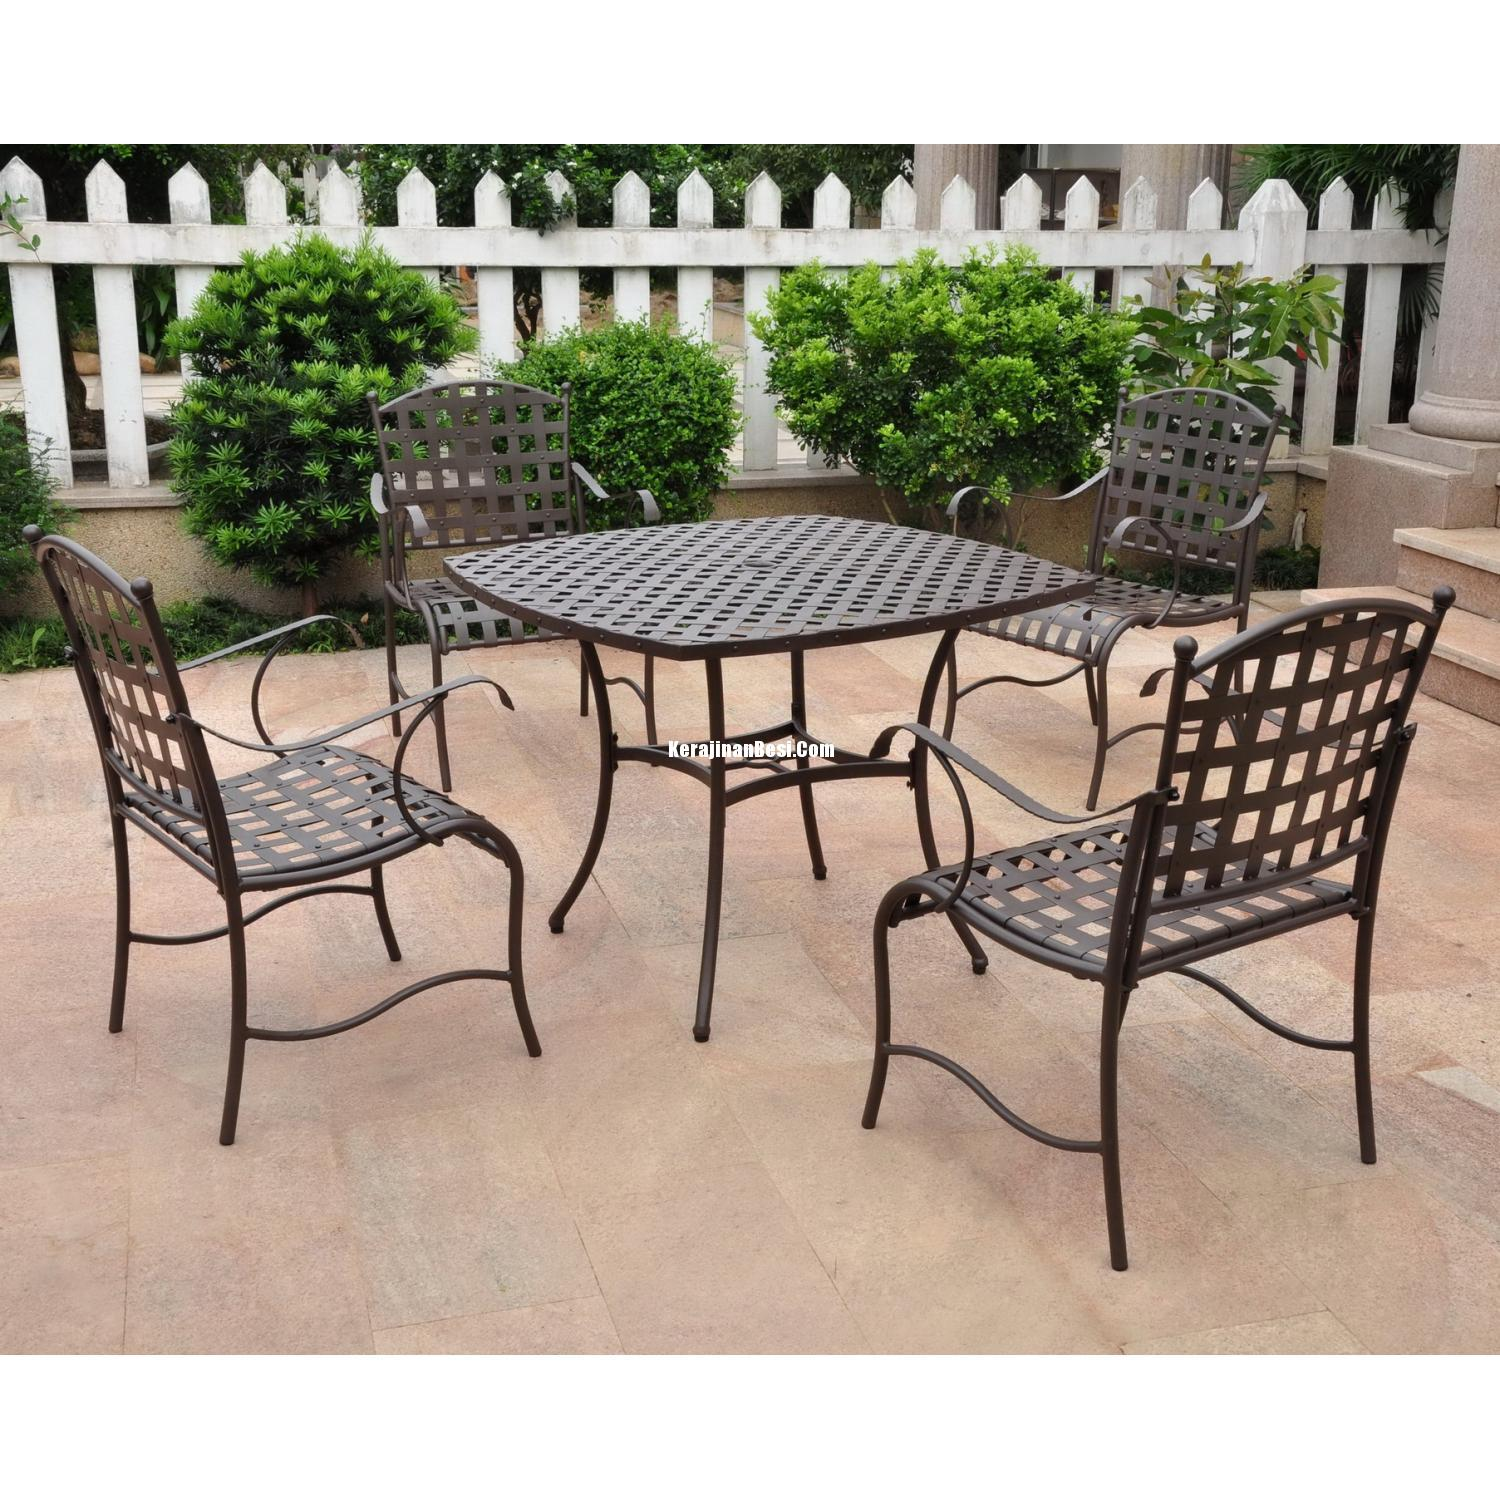 rot iron furniture. Melano Table Wrought Iron Furniture Garden Rot G